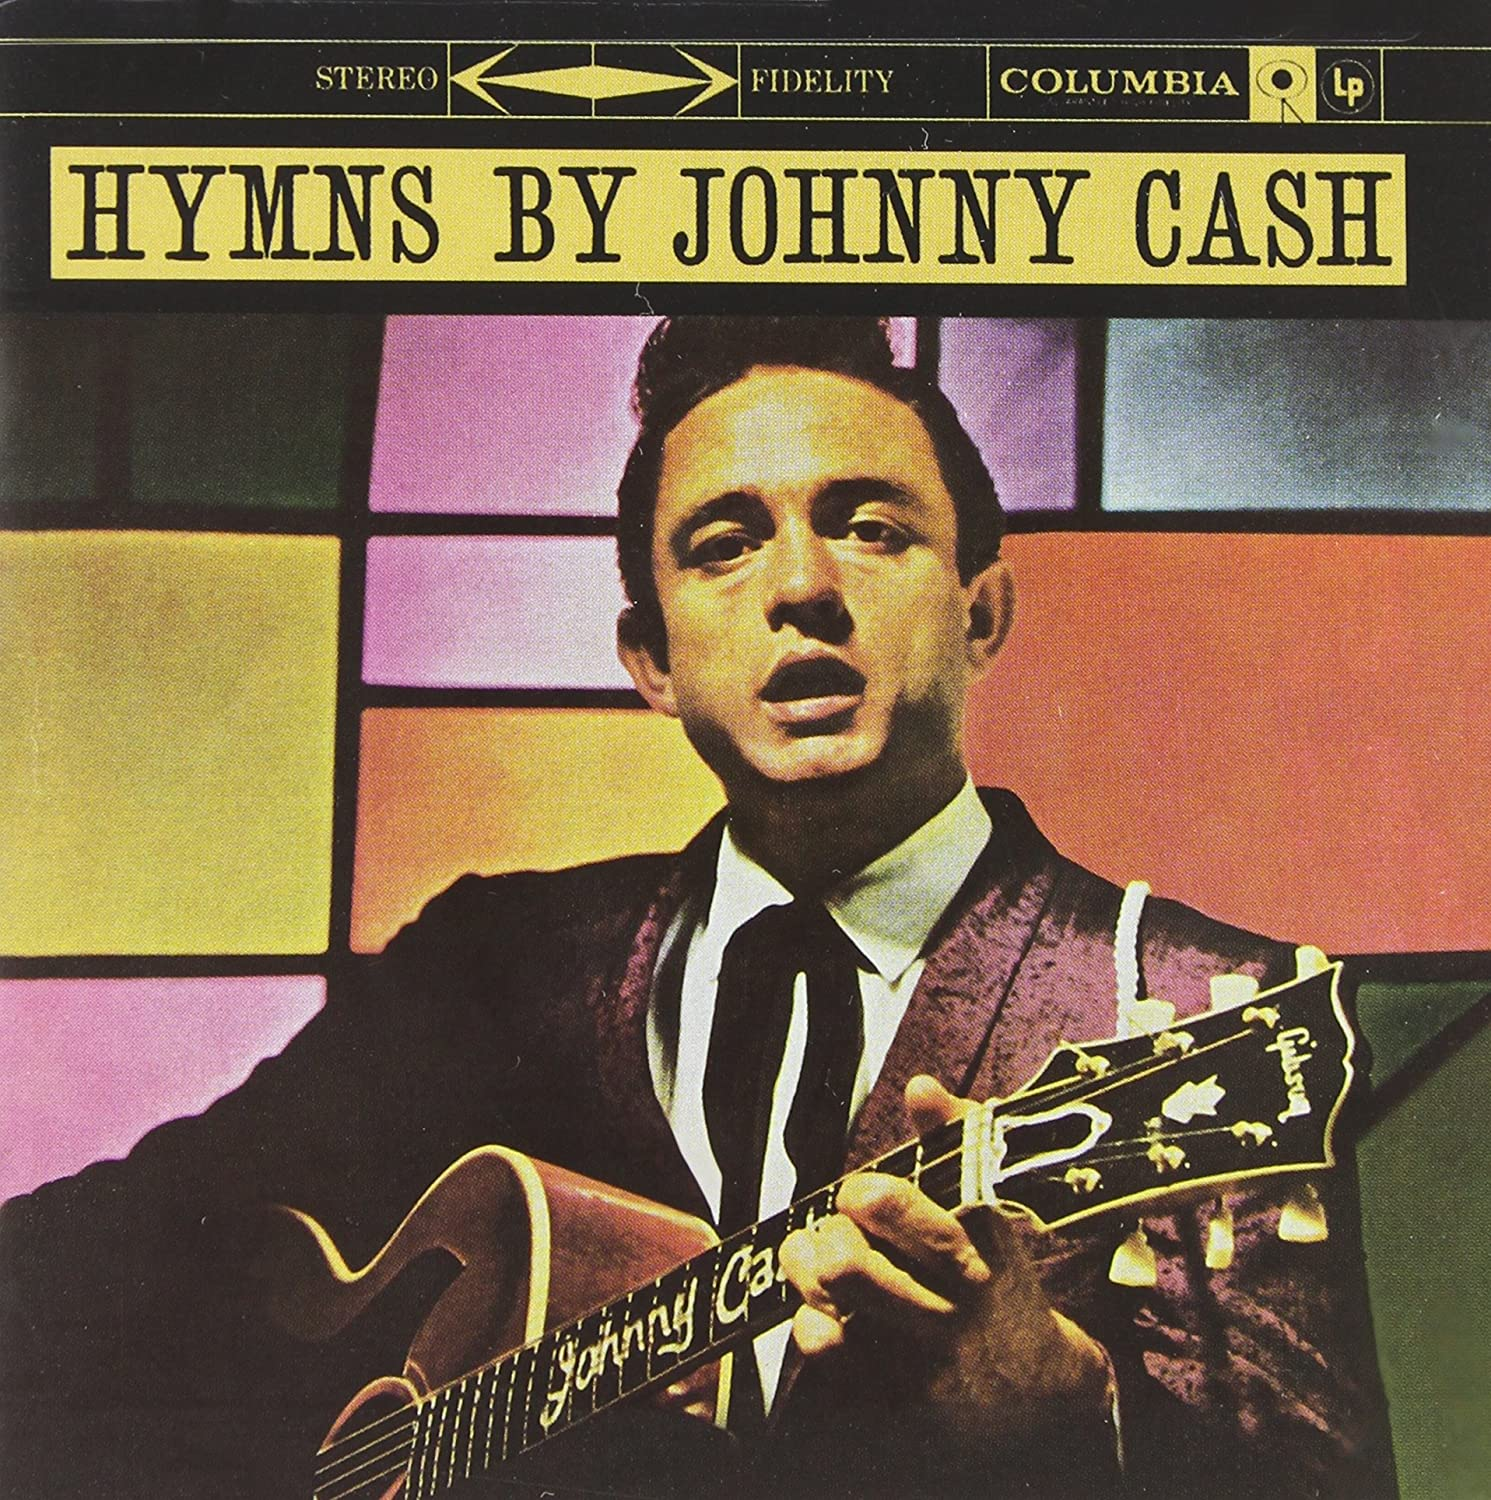 Johnny Cash - Hymns by Johnny Cash - Amazon.com Music